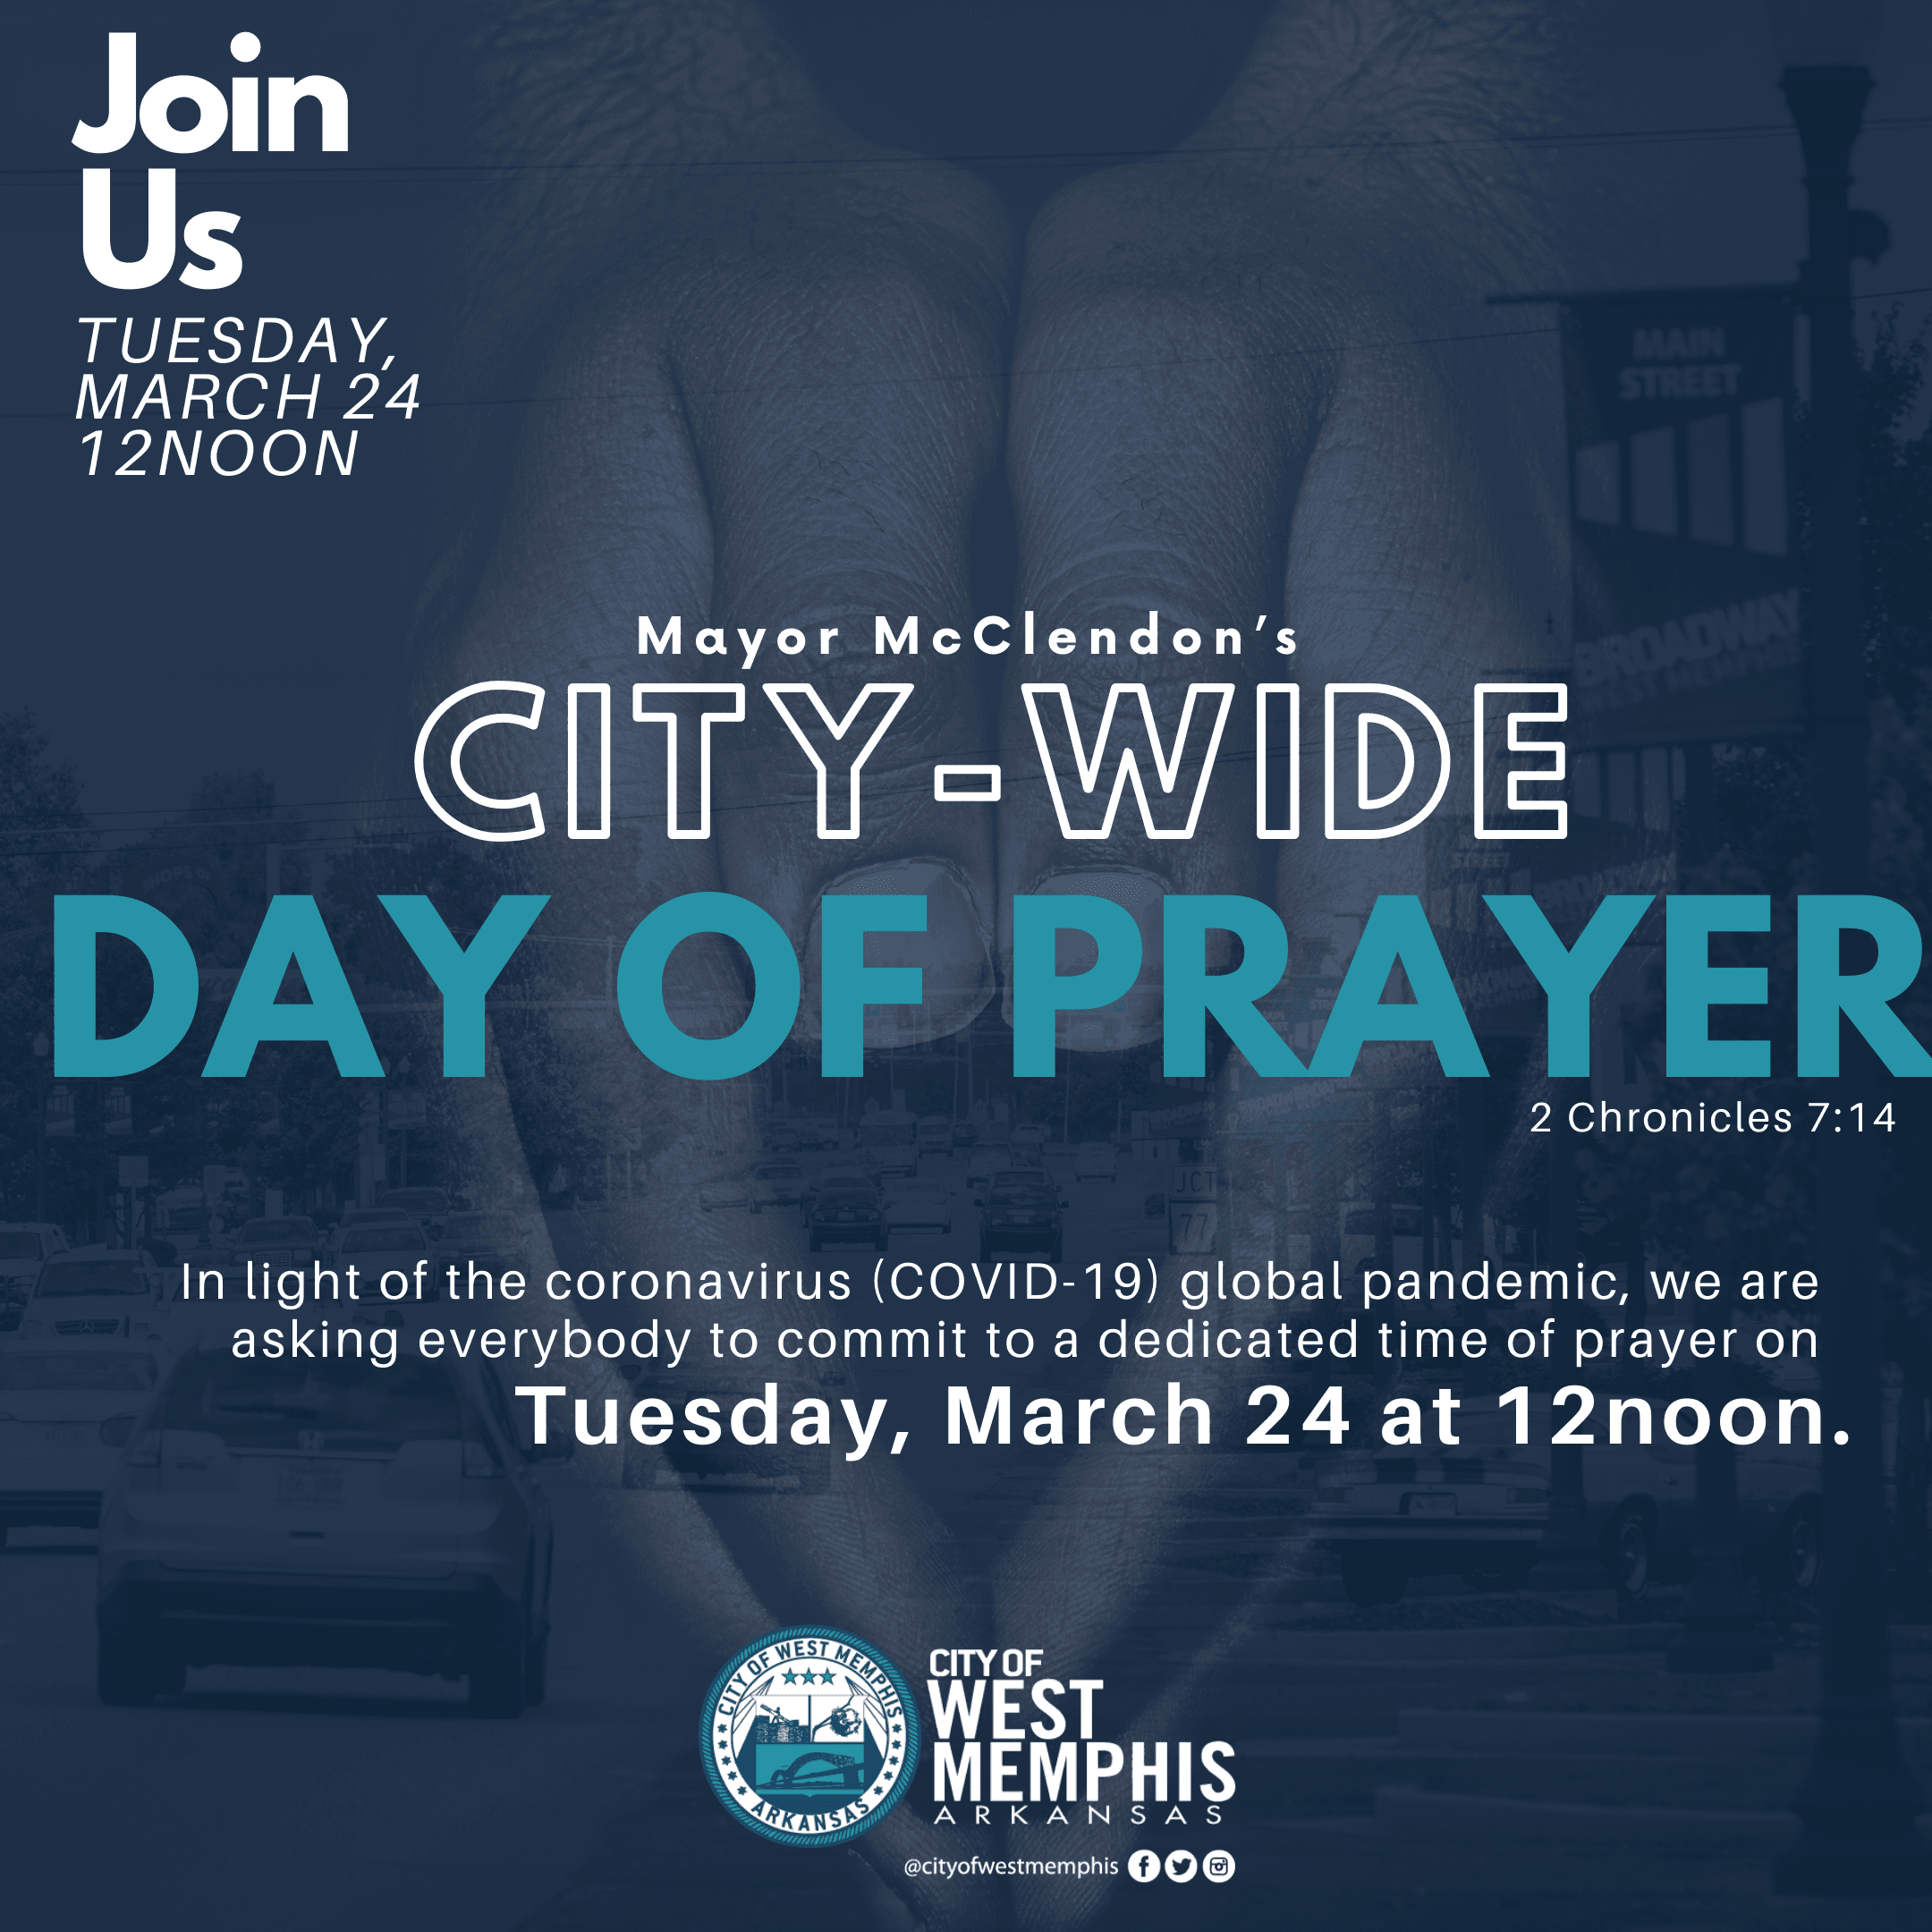 City wide Day of Prayer in West Memphis